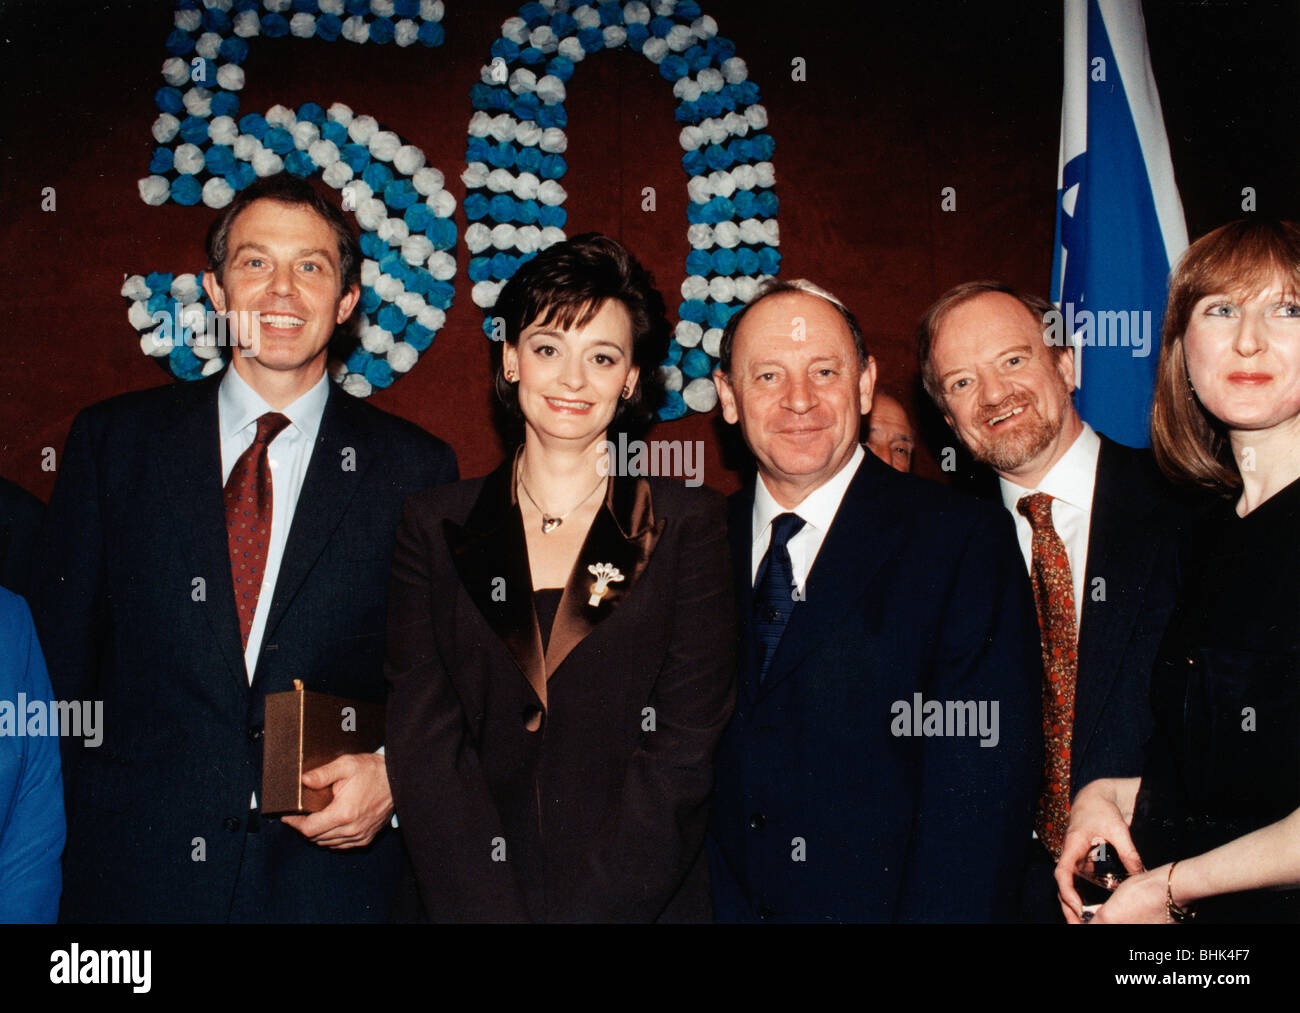 Robin Cook (1946- ), Tony Blair (1953- ) and Cherie Blair at a ceremony, 1998. Artist: Sidney Harris Stock Photo